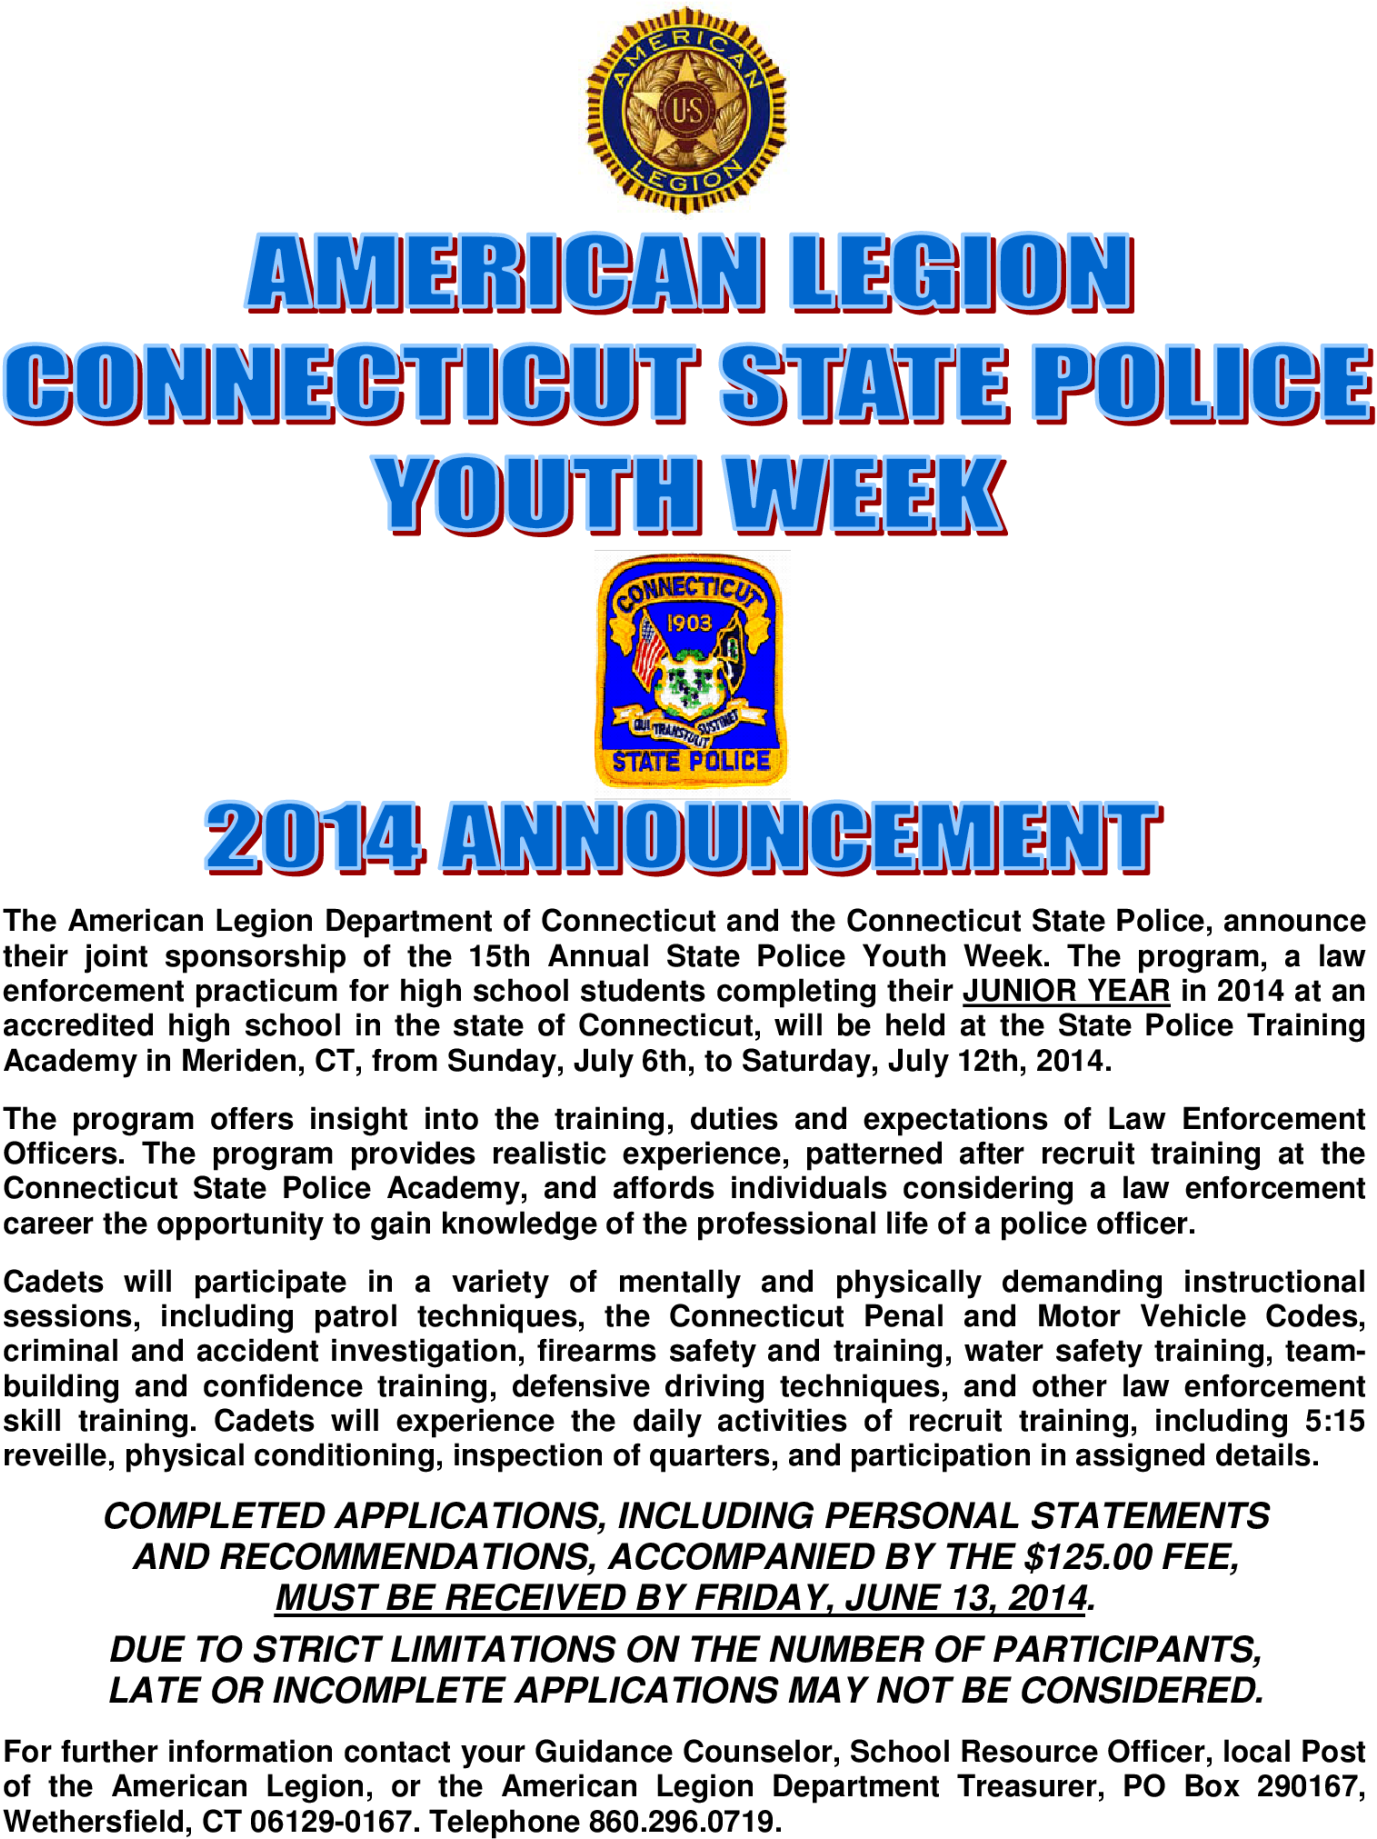 Download 2018 State Police Youth Week Application - Full